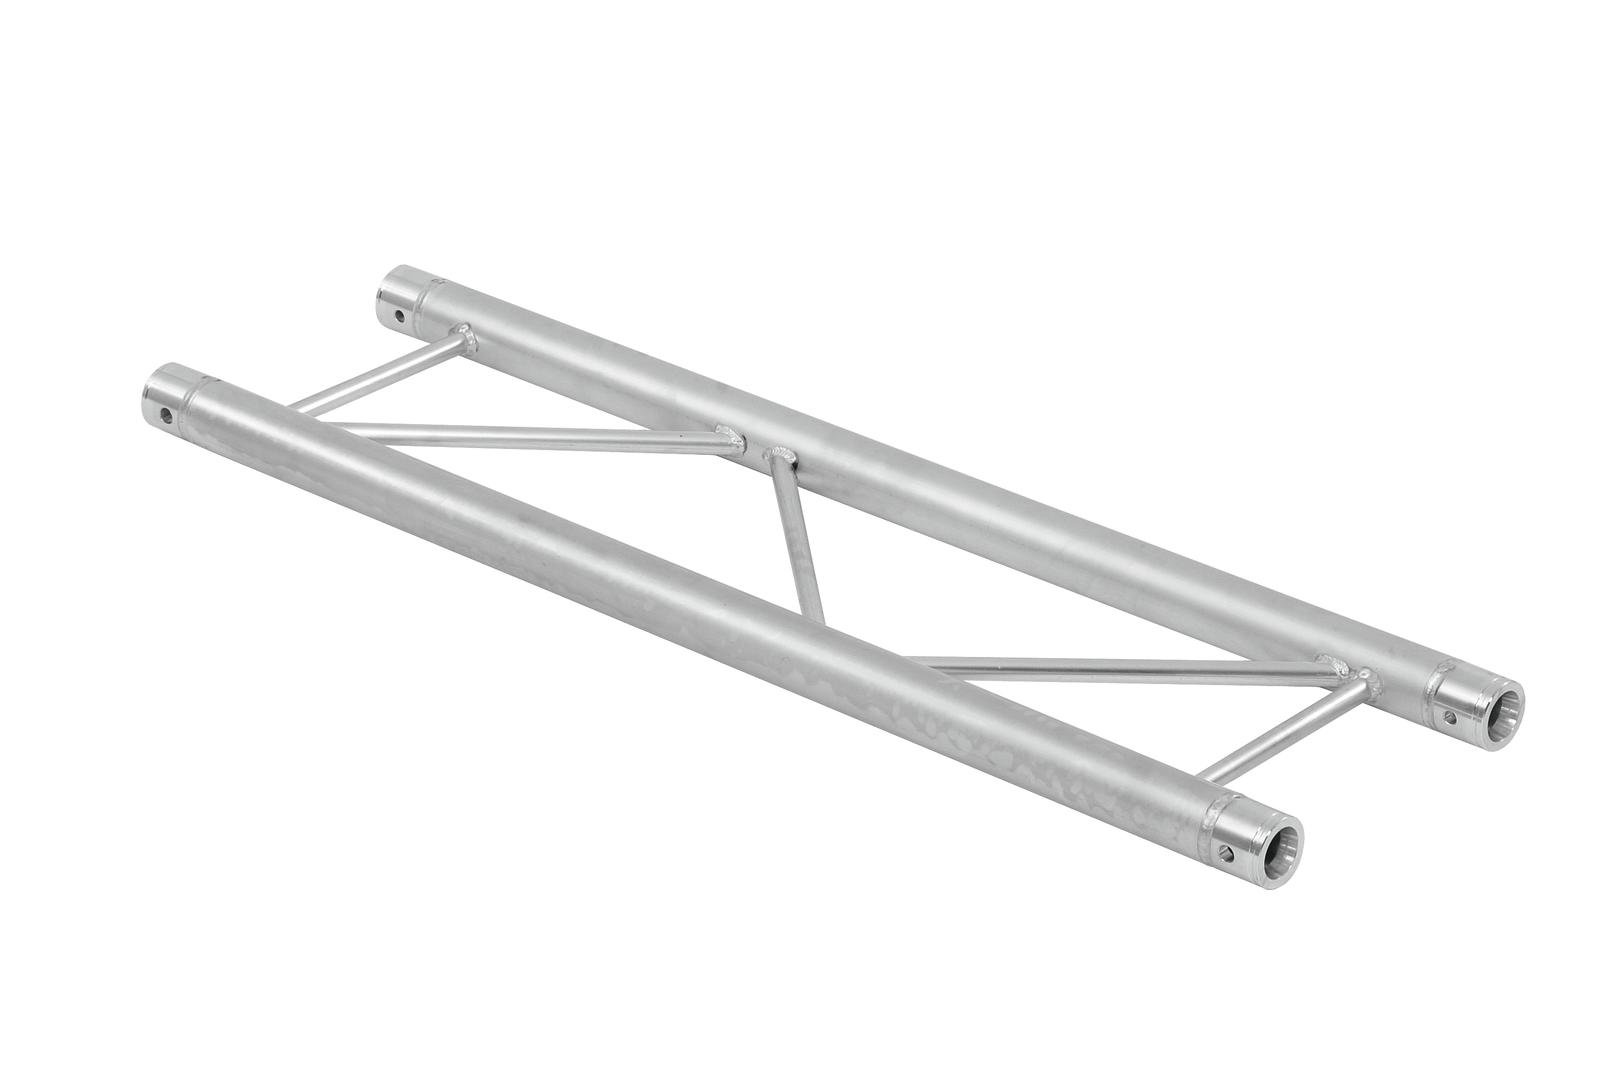 ALUTRUSS BILOCK E-GL22 1500 a 2 vie traverse